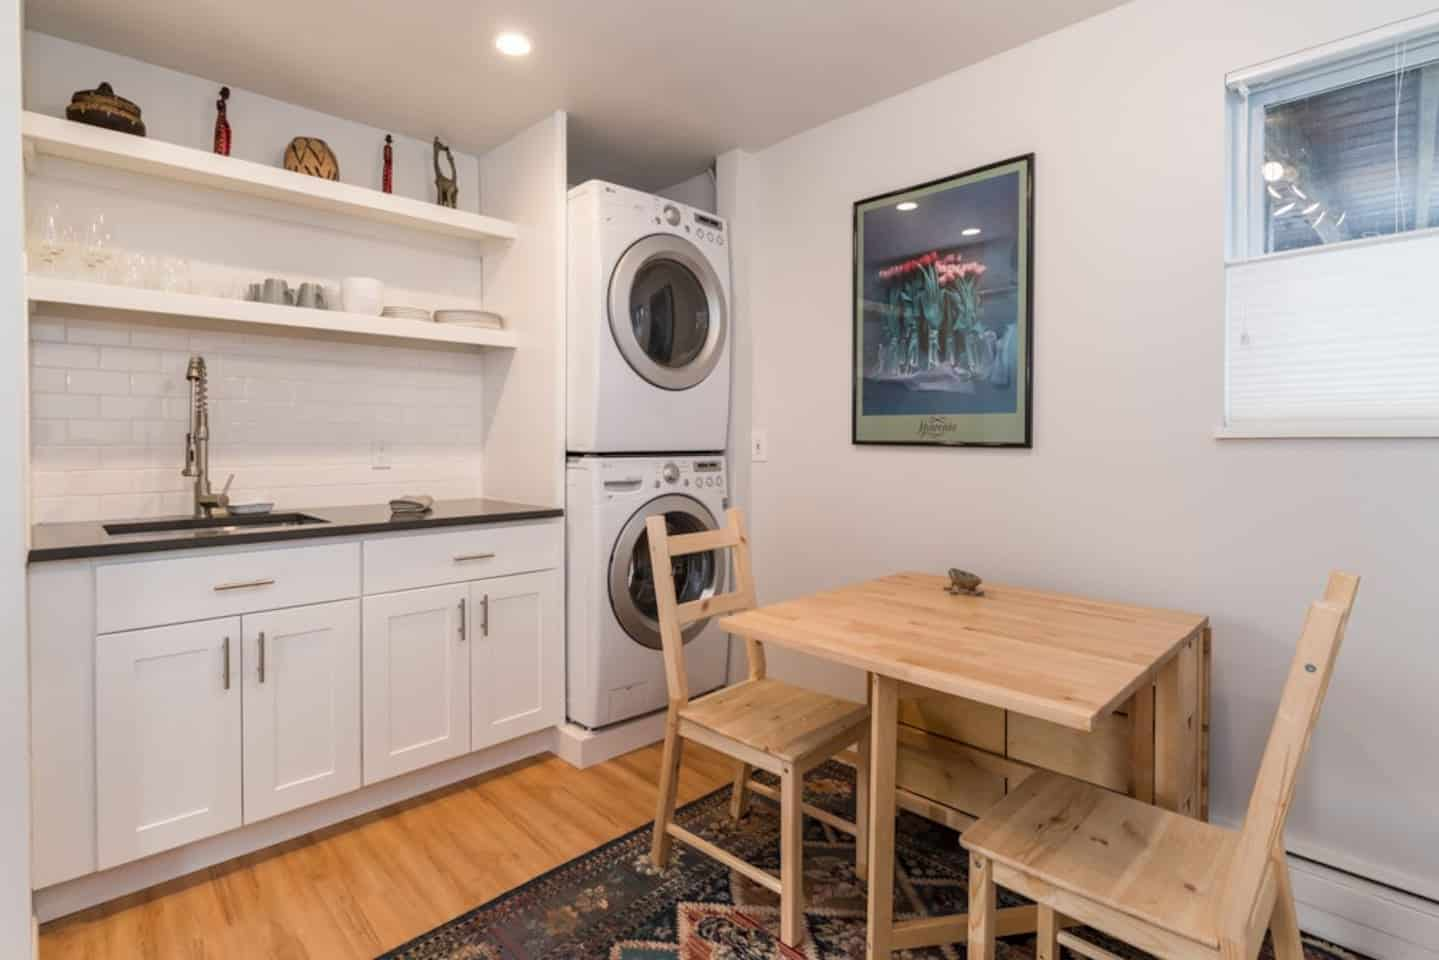 Image of Airbnb rental in Boulder, Colorado